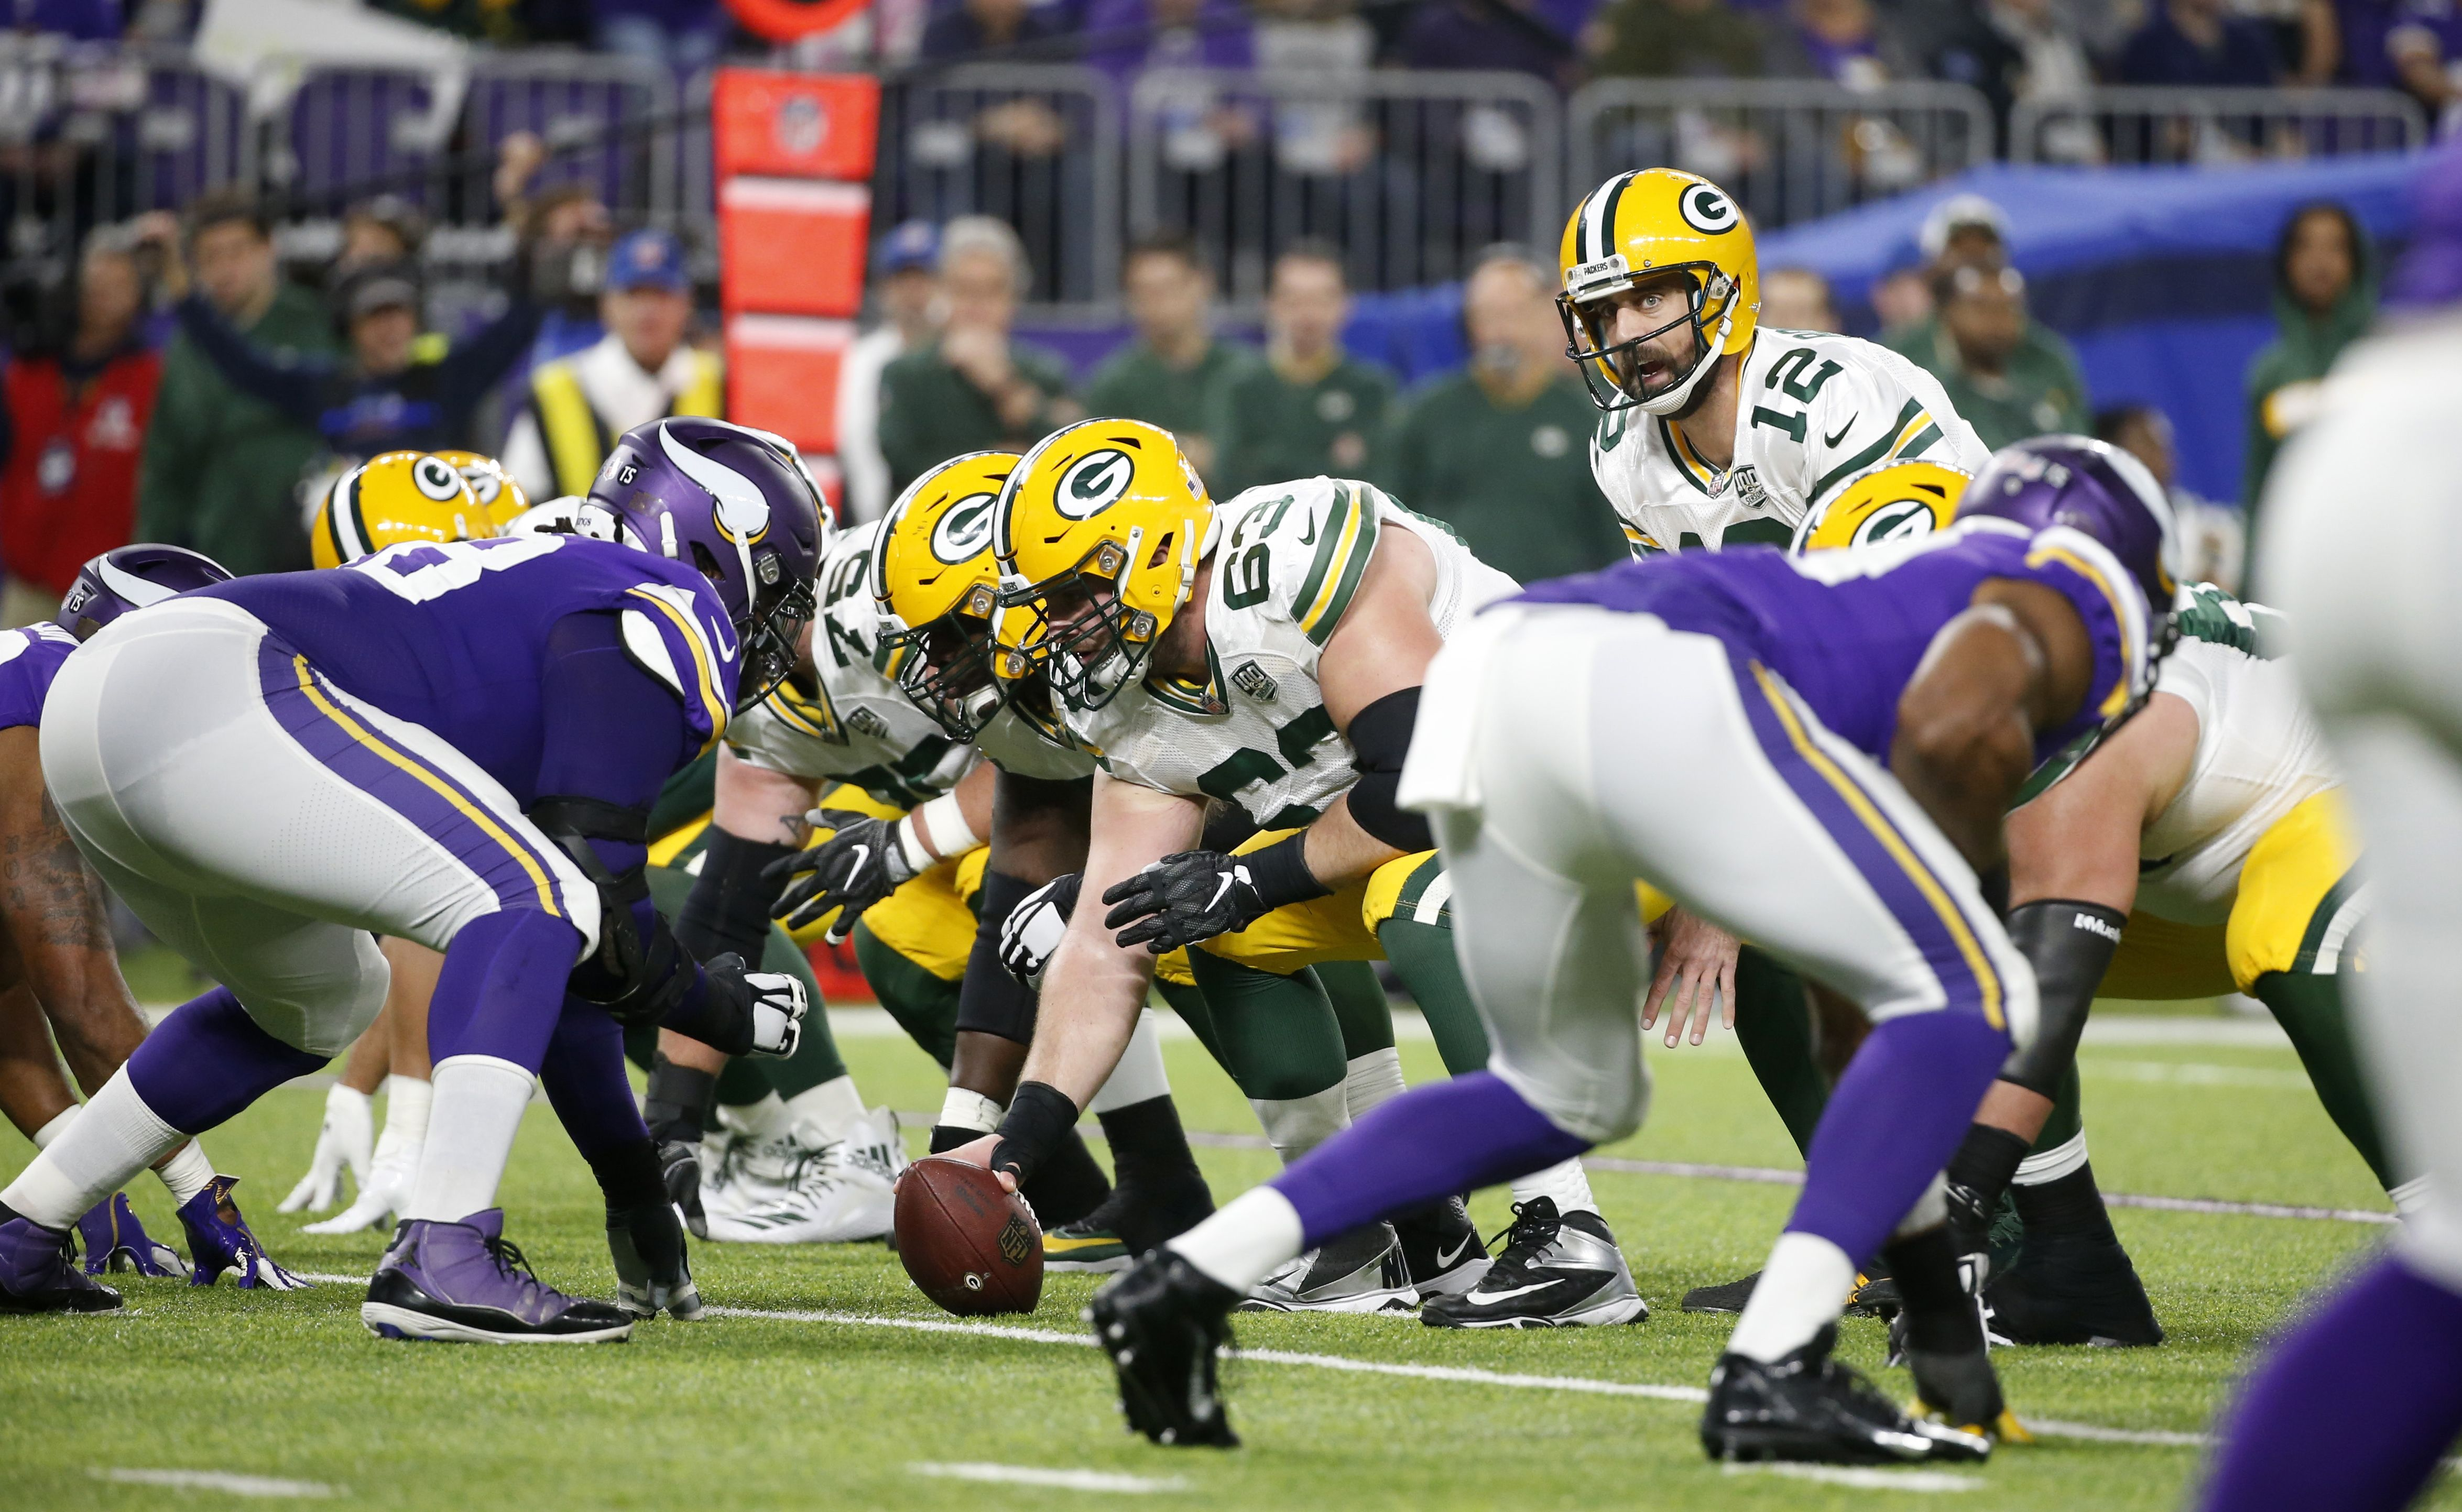 Green Bay Packers Vs Minnesota Vikings Live Score Updates Tv Channel How To Watch Free Live National Nfl News National Football League Football League